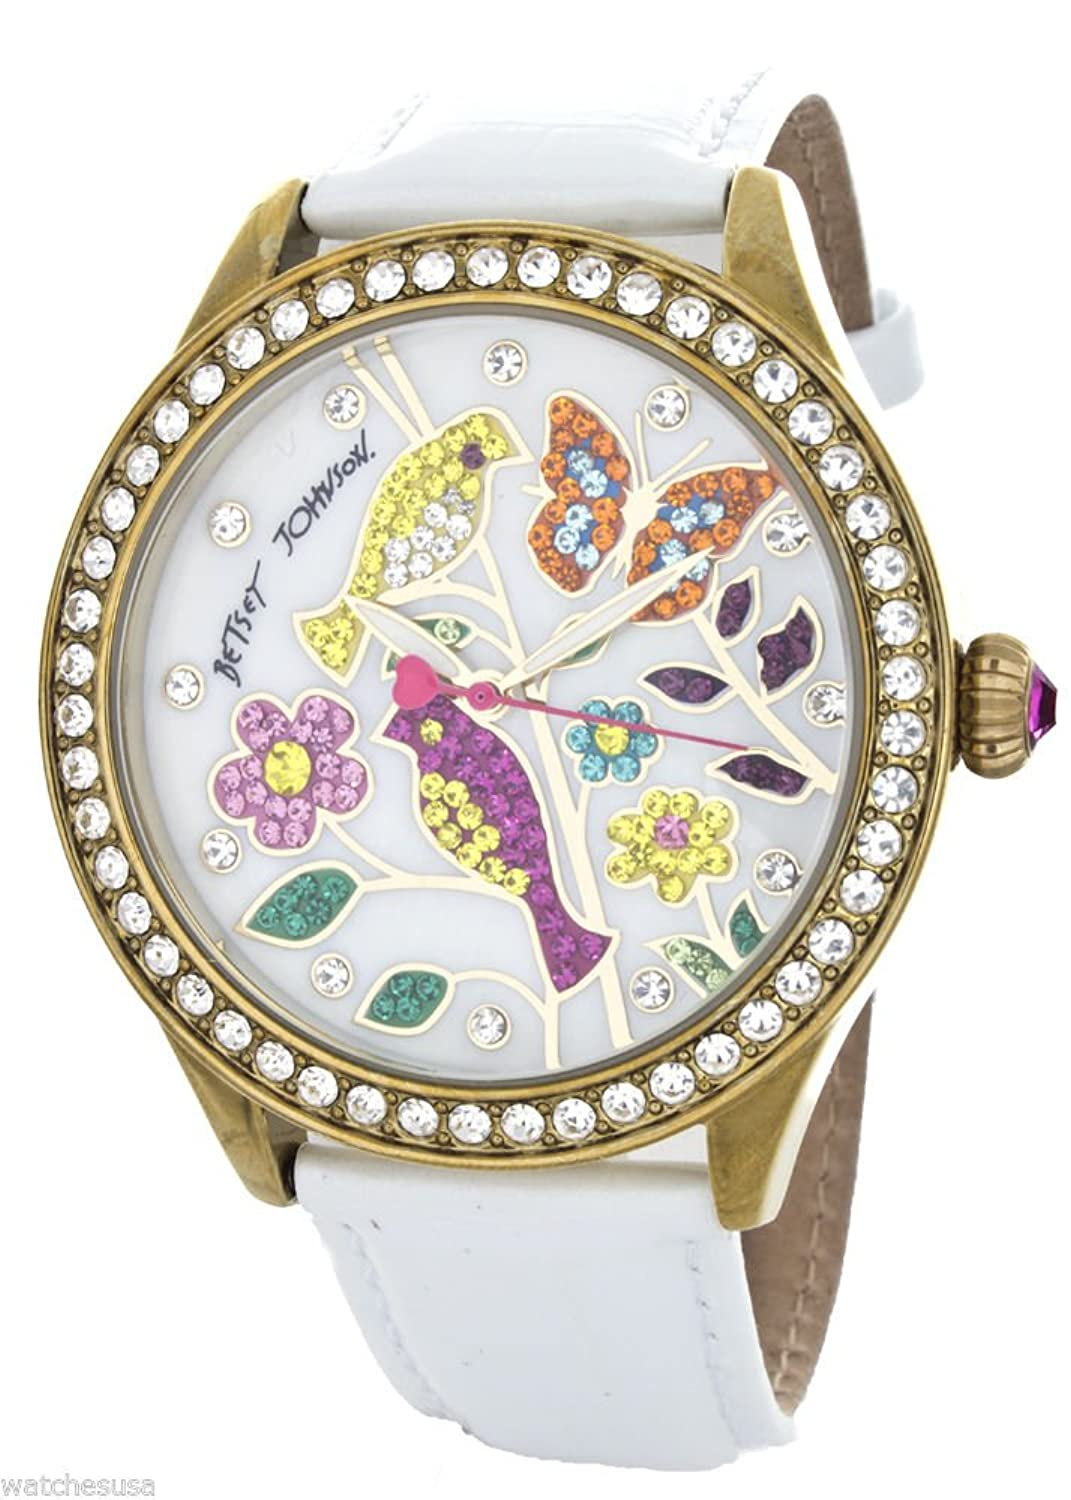 Betsey Johnson Women's White Mother of Pearl Bird & Flower Dial Watch BJ00131-45